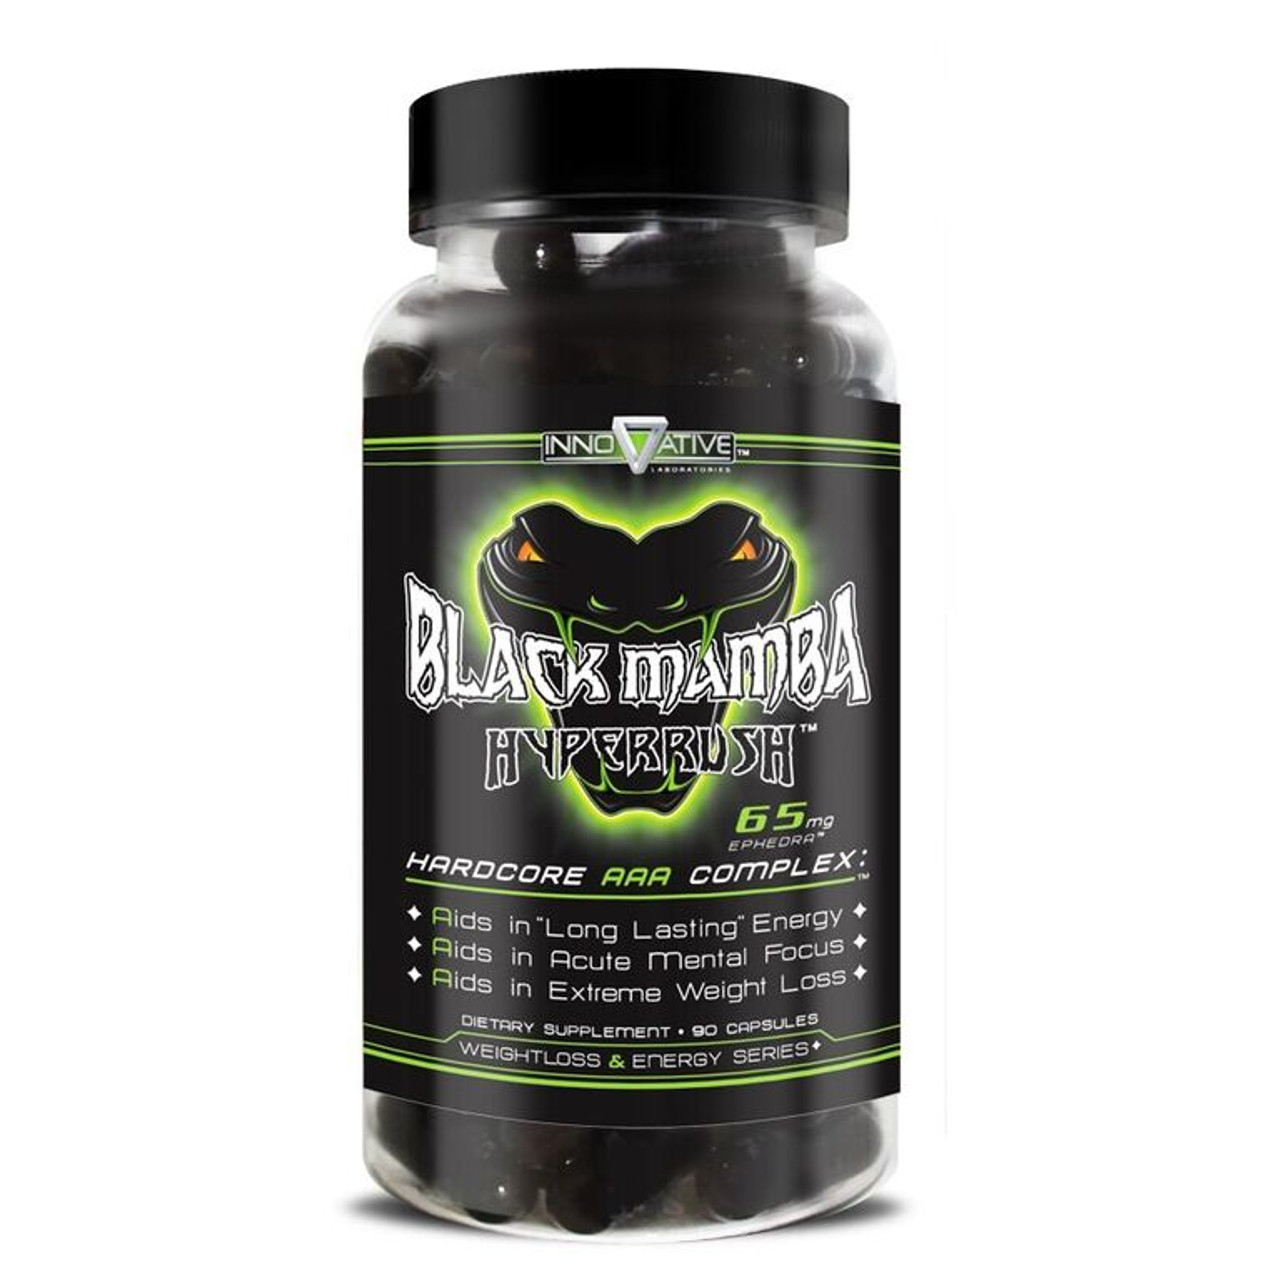 Black Mamba Hyperrush 90ct Innovative Laboratories